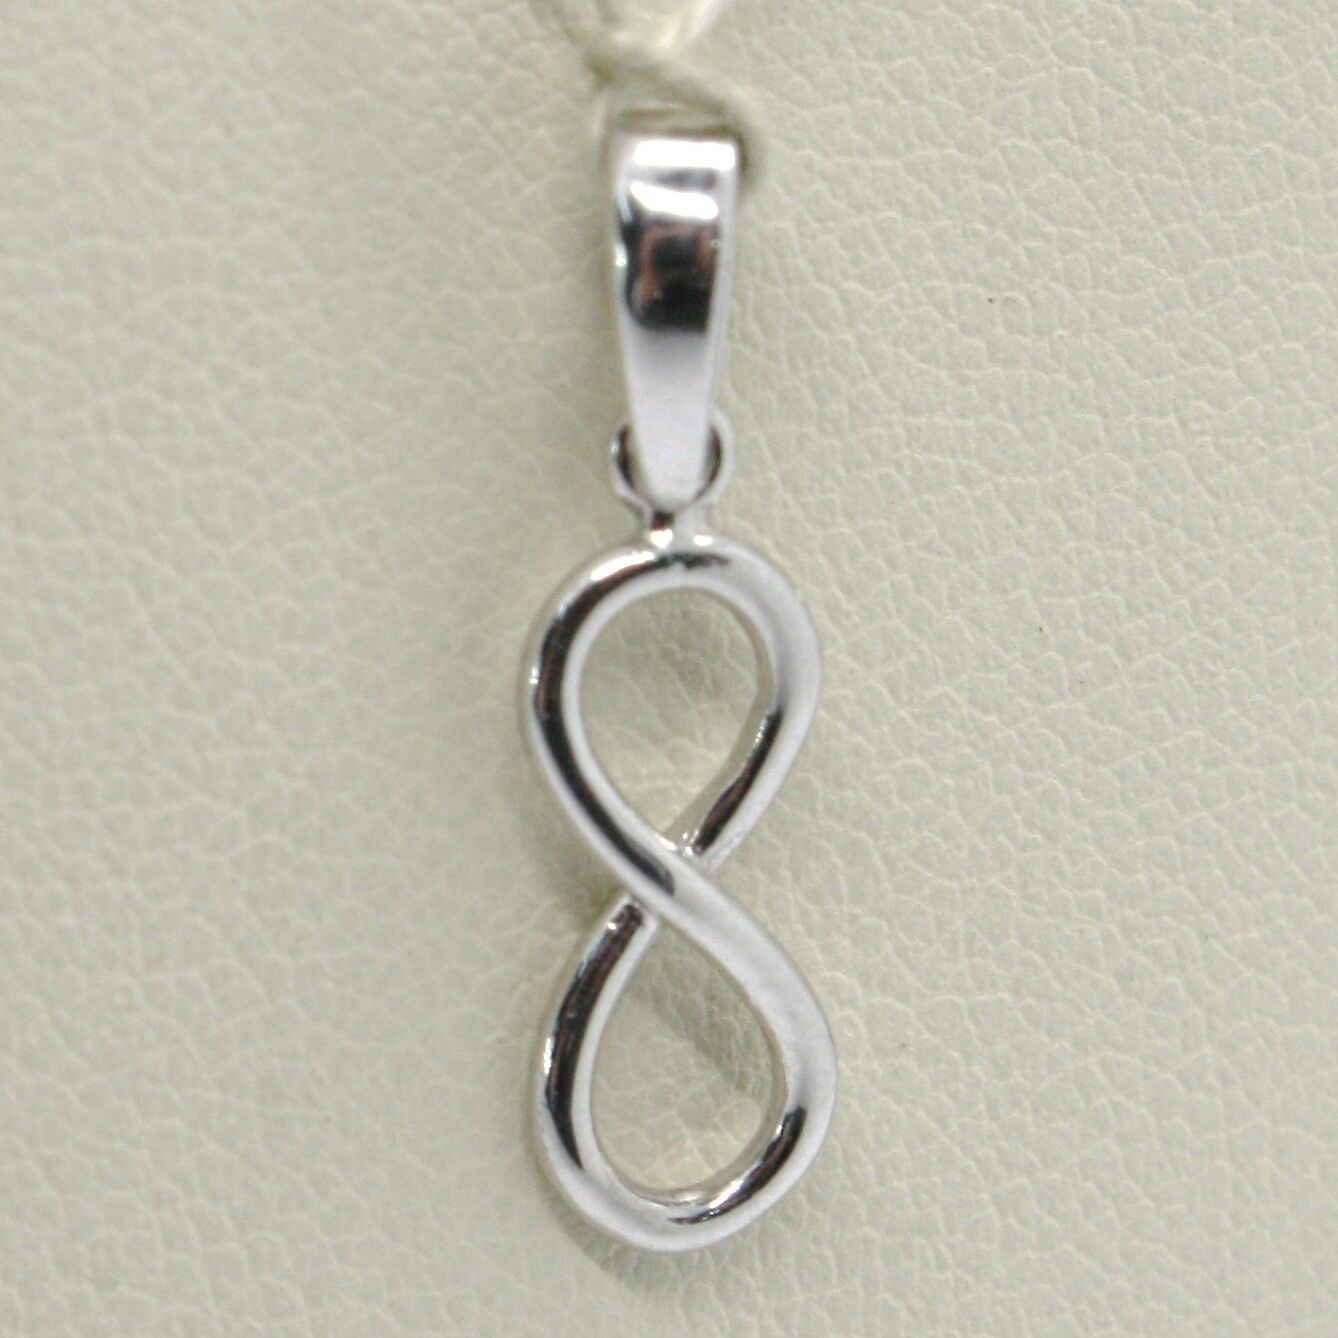 18K WHITE GOLD PENDANT CHARM INFINITY INFINITE, MADE IN ITALY 0.8 INCHES, 20 MM